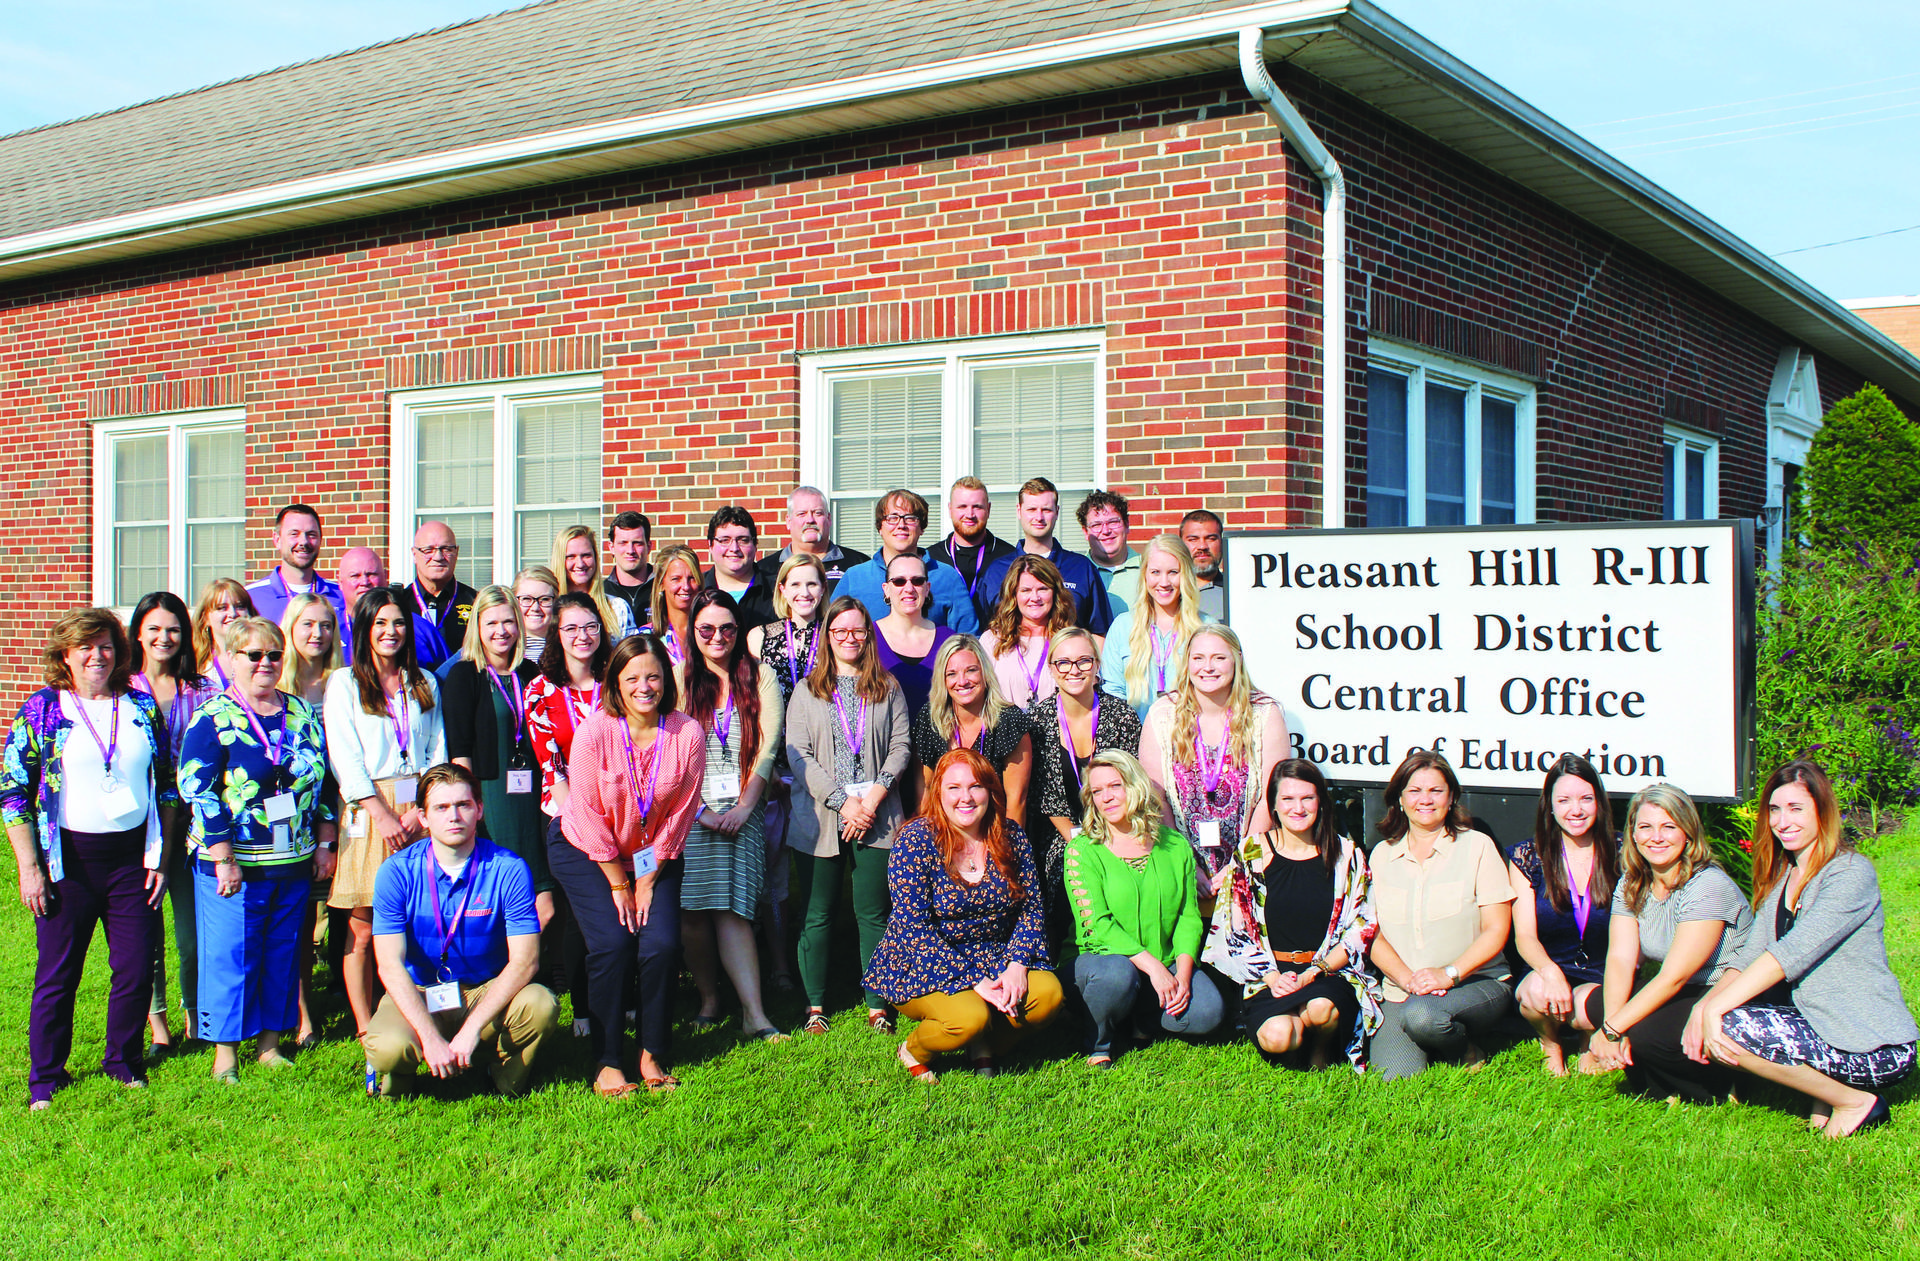 New staff to join PH School District this fall